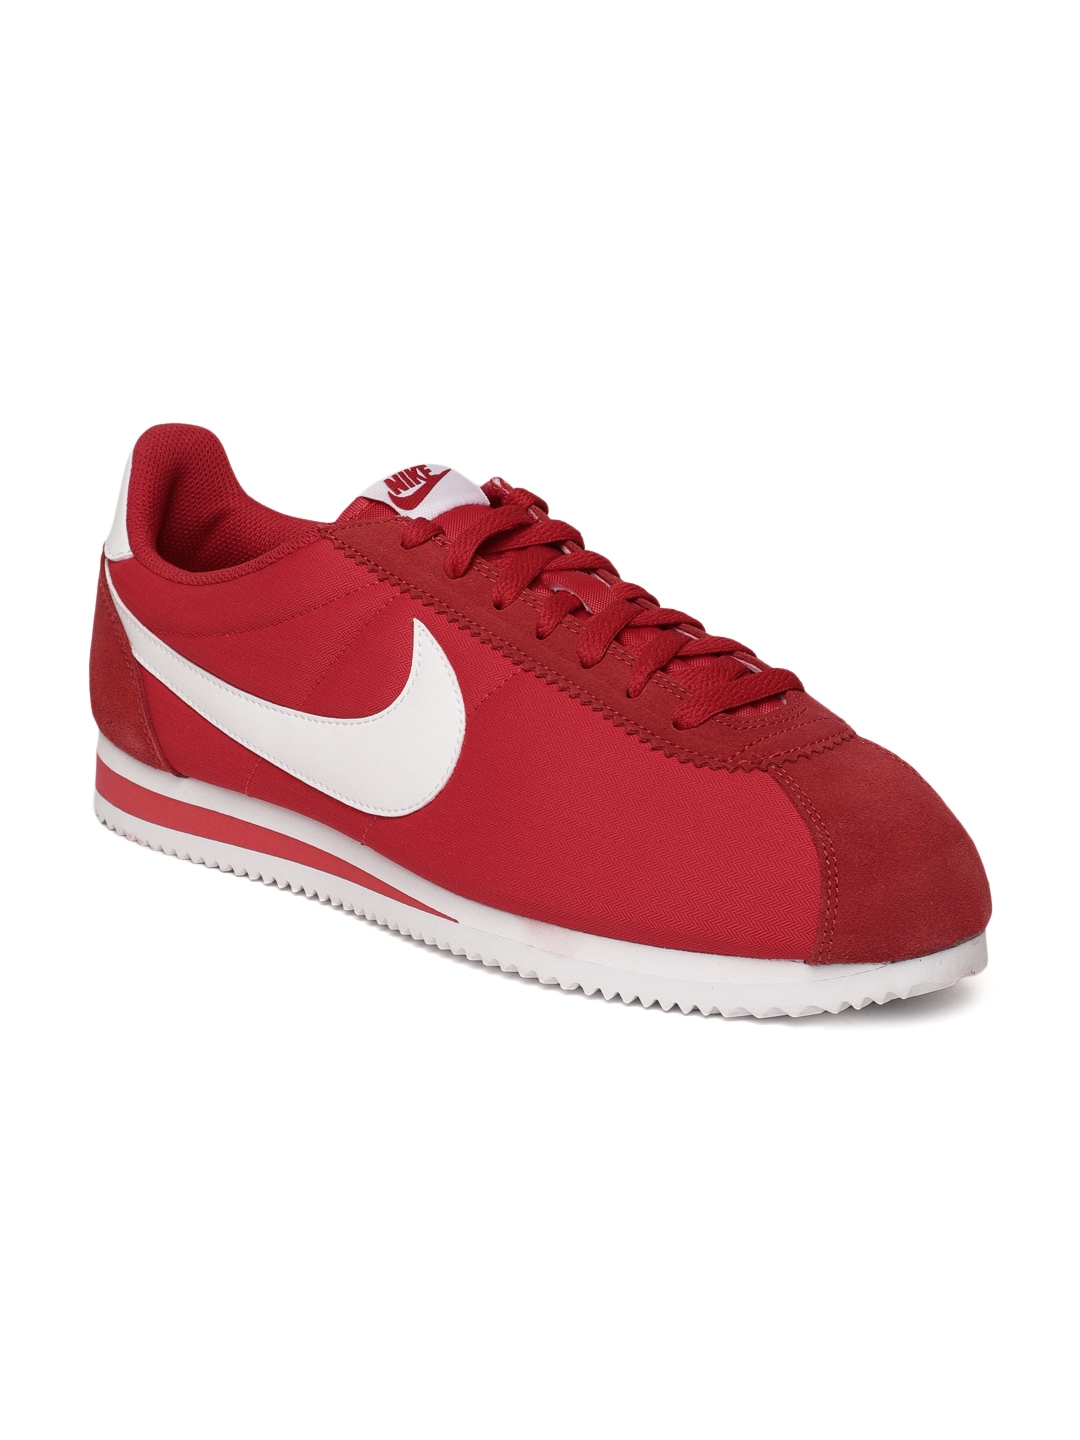 buy popular 1d9df 804a6 Buy Nike Men Red Classic Cortez Nylon Casual Shoes - Casual Shoes ...